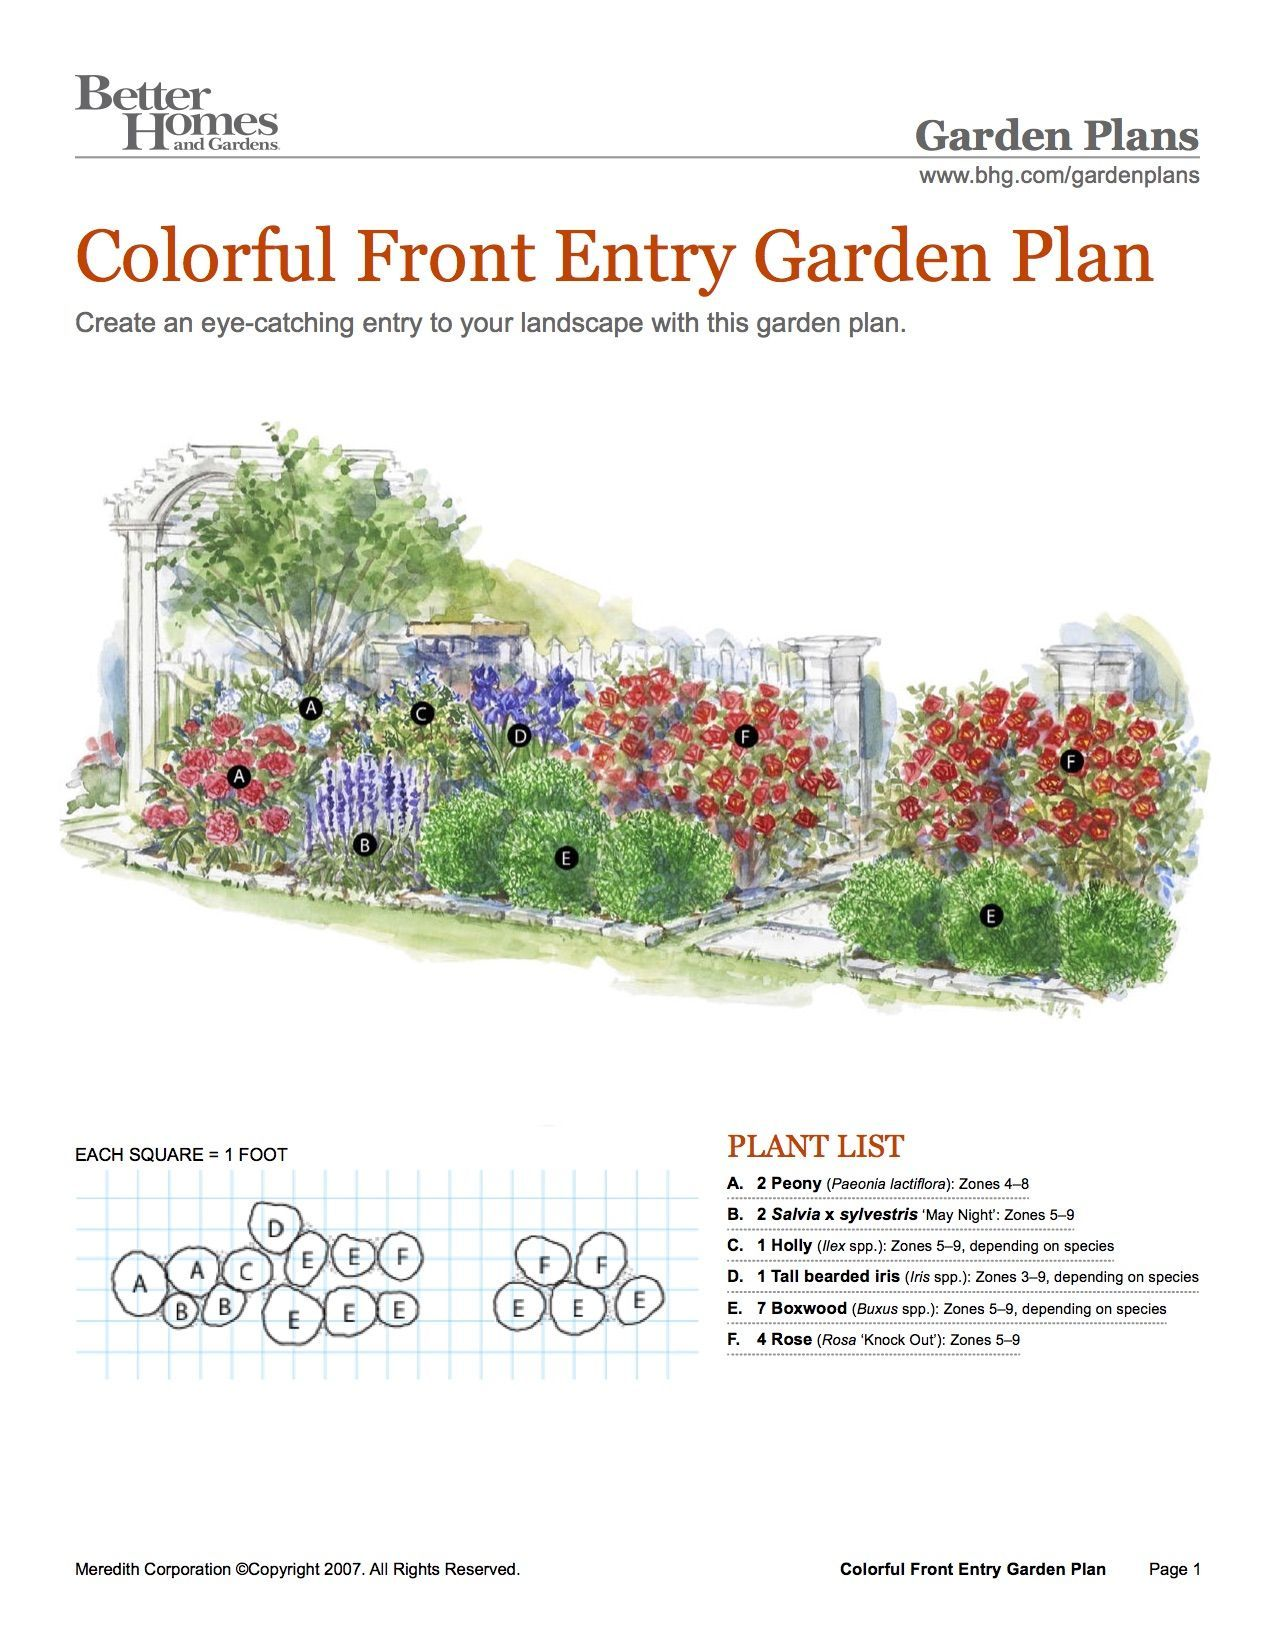 Bhg Colorful Front Entry Garden Plan Flower Garden Plans